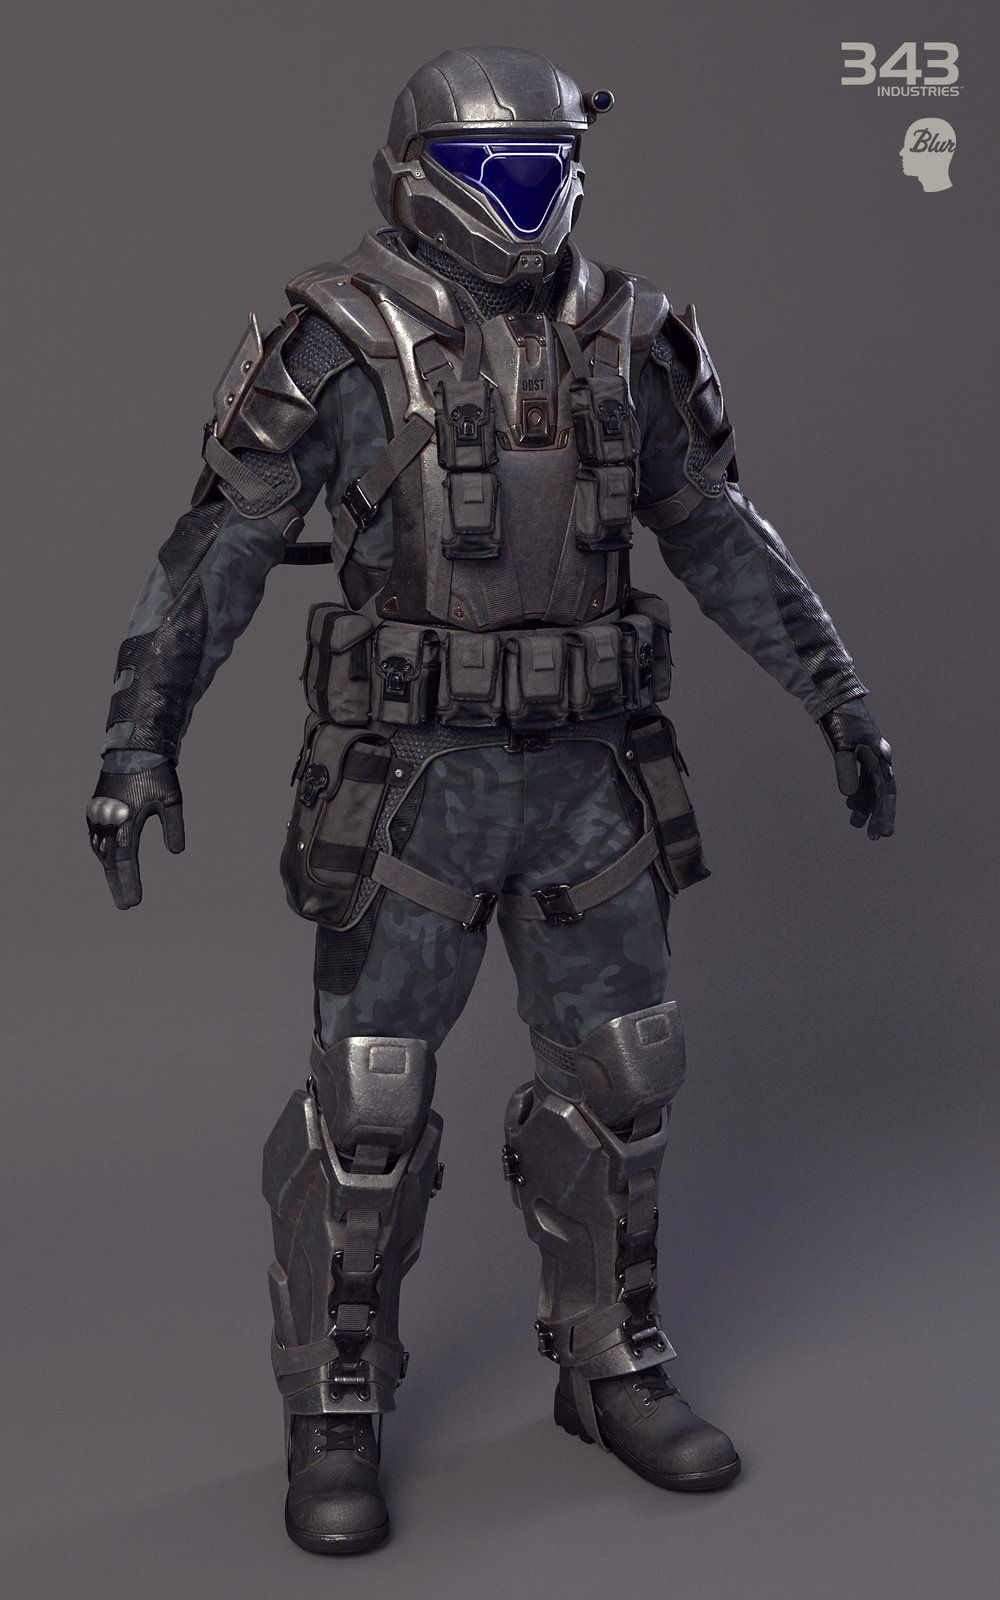 Pin By My Info On Mecha Halo Armor Halo Master Chief Halo